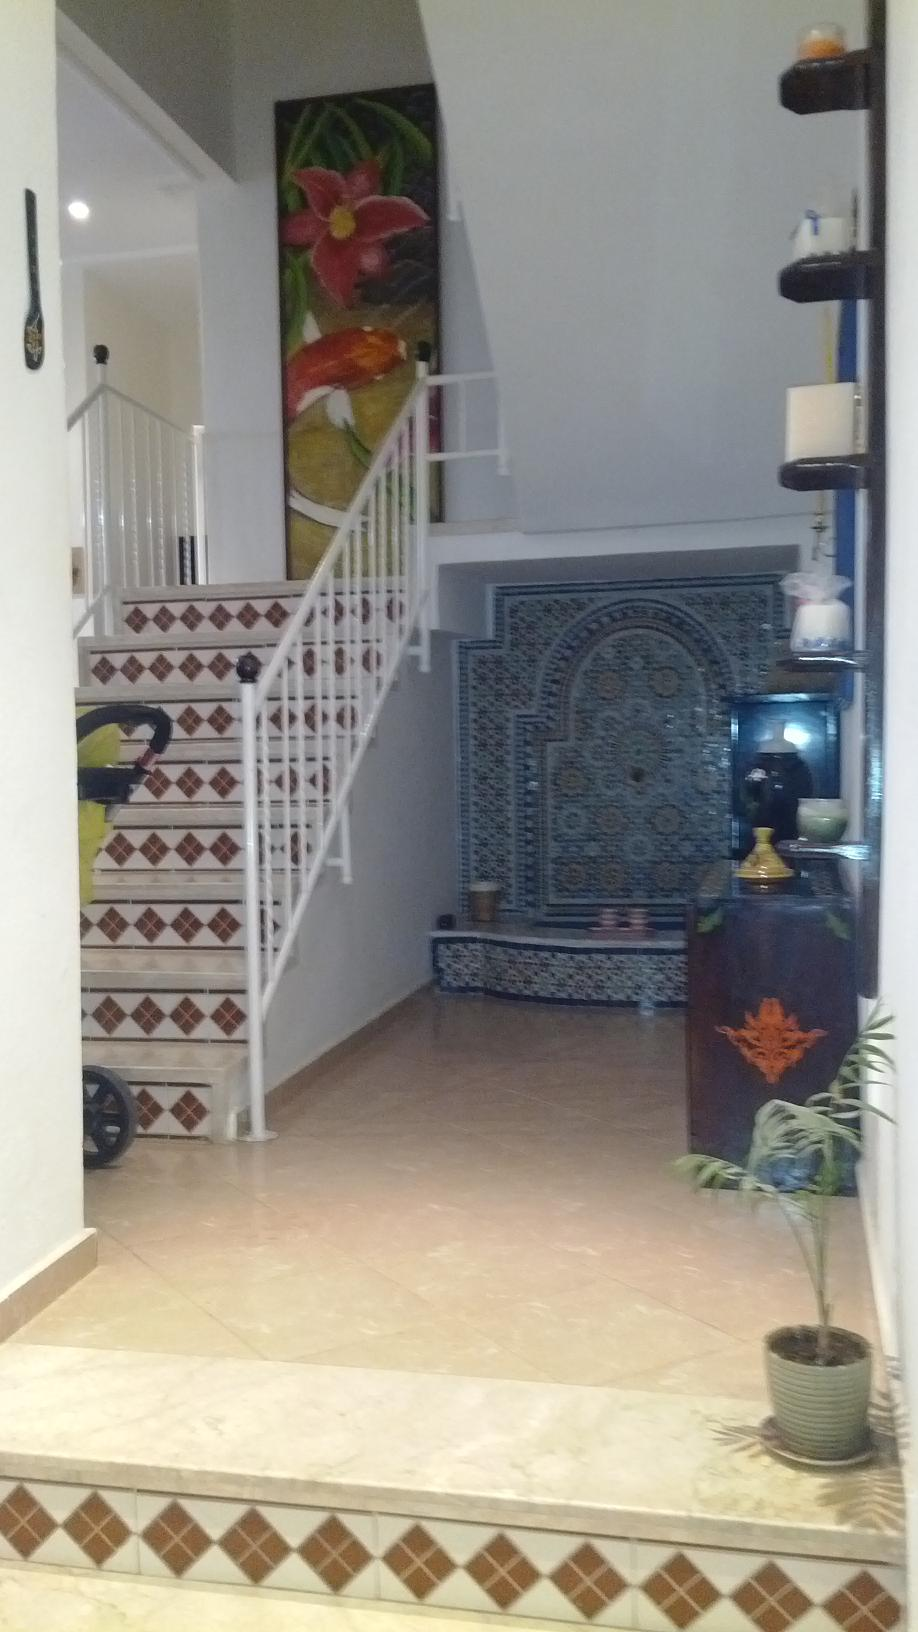 House for Sale in rabat 2.300.000 DH